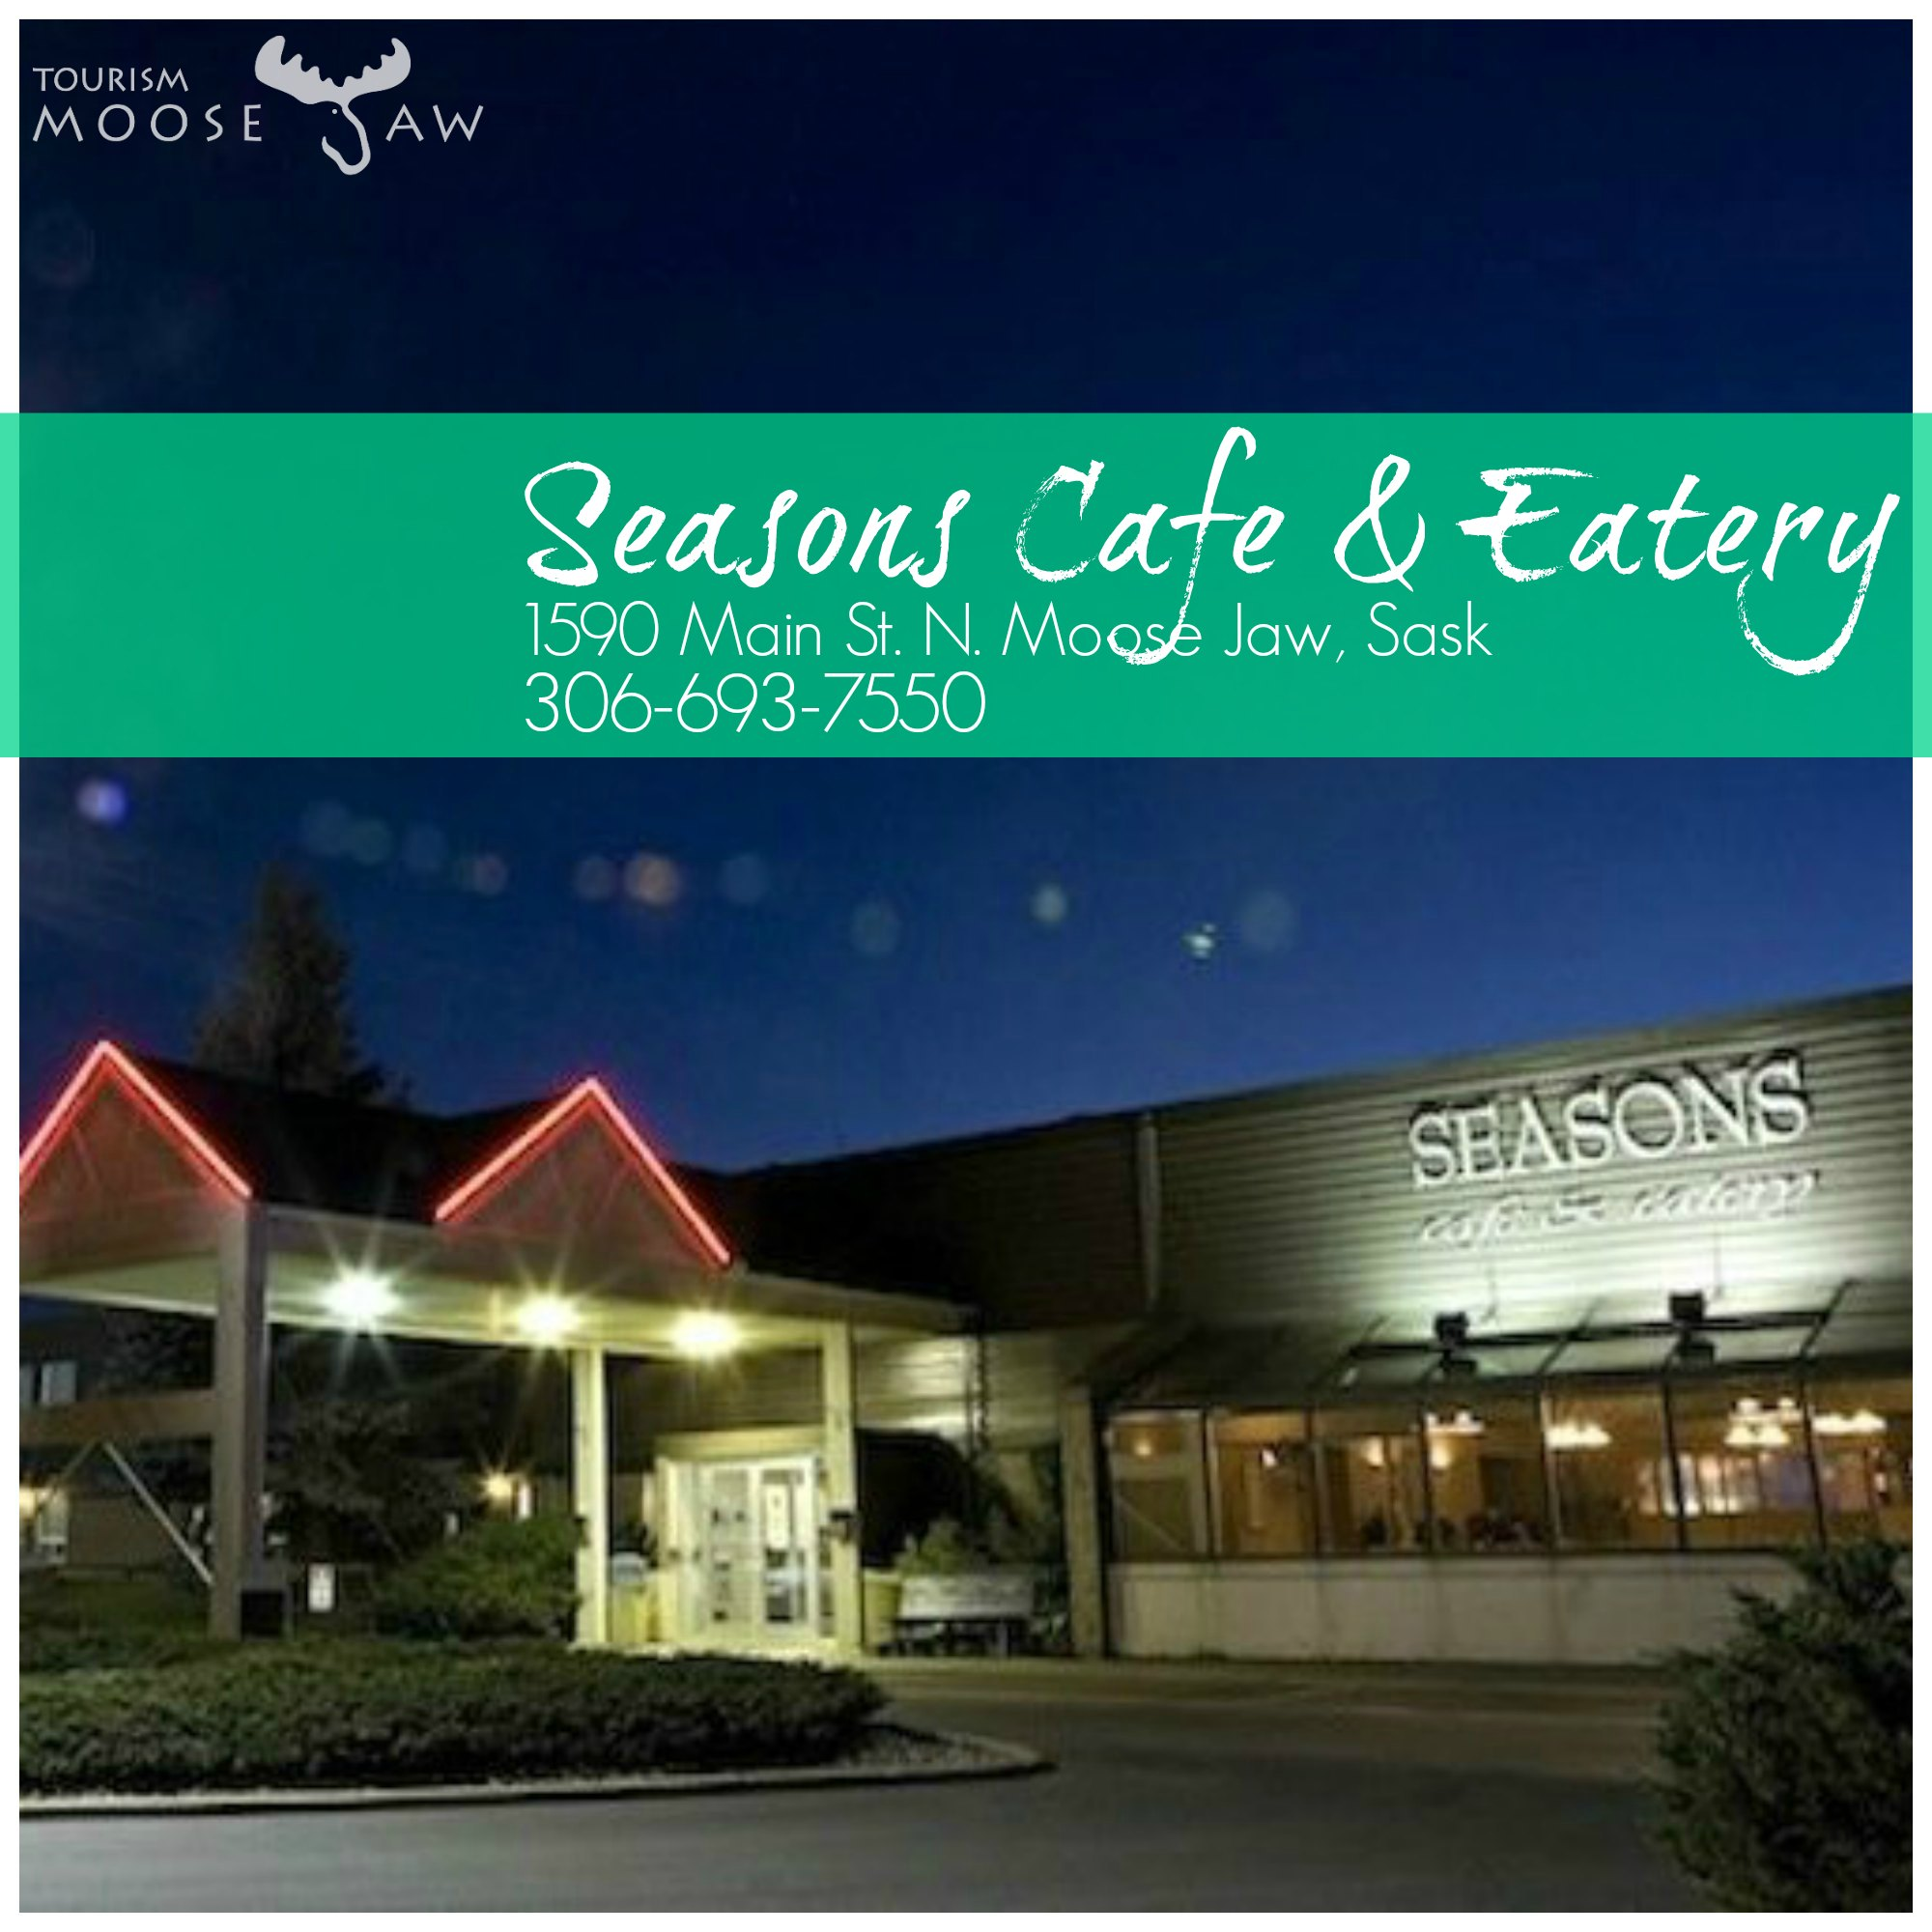 season cafe & eatery.jpg